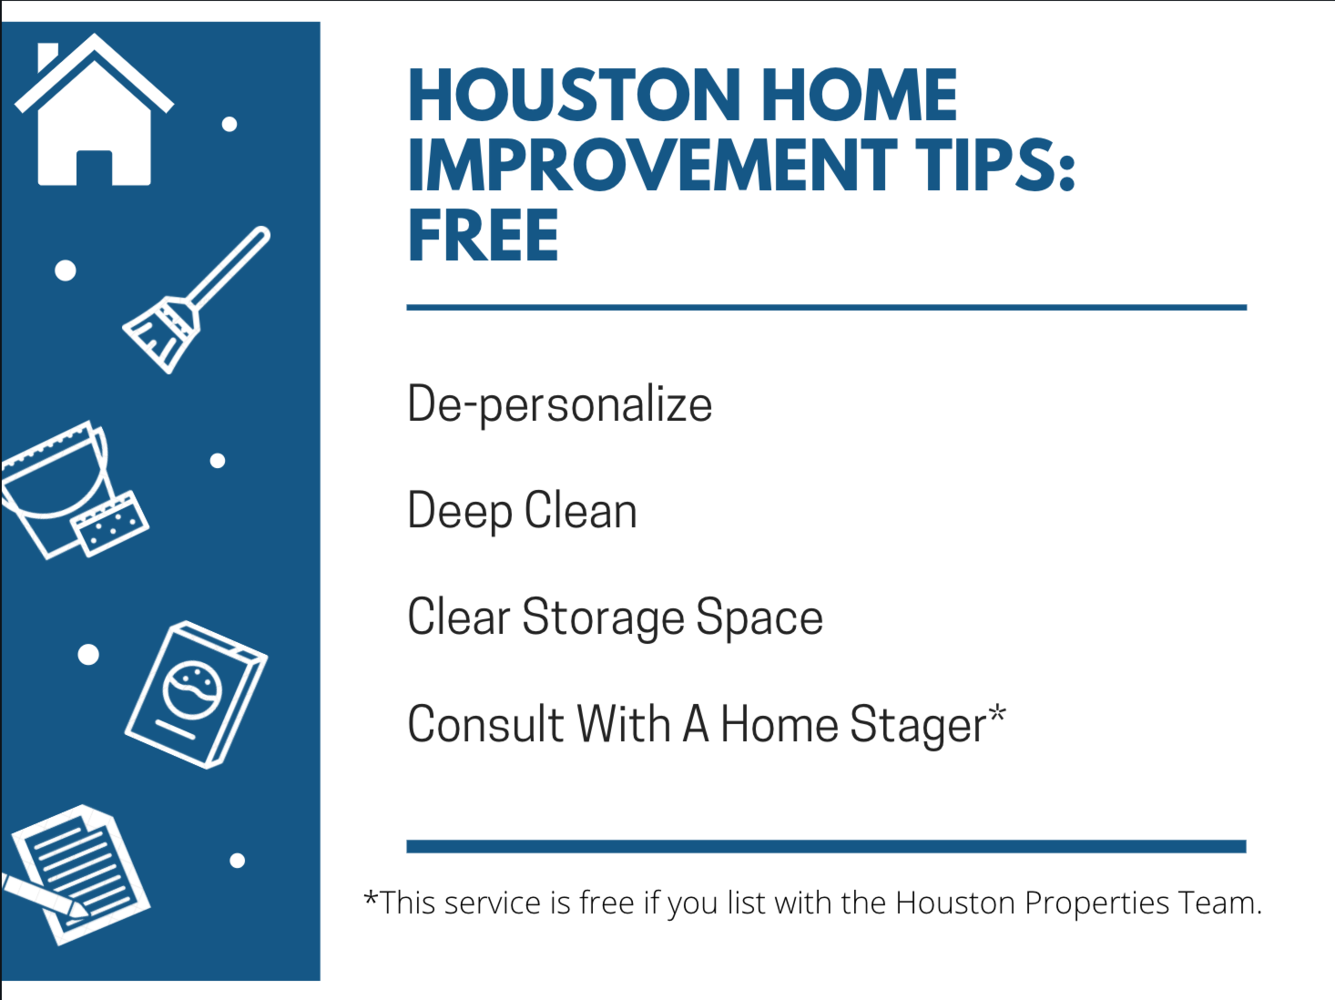 Houston Home Improvement Tips: Increase Home Value For Free